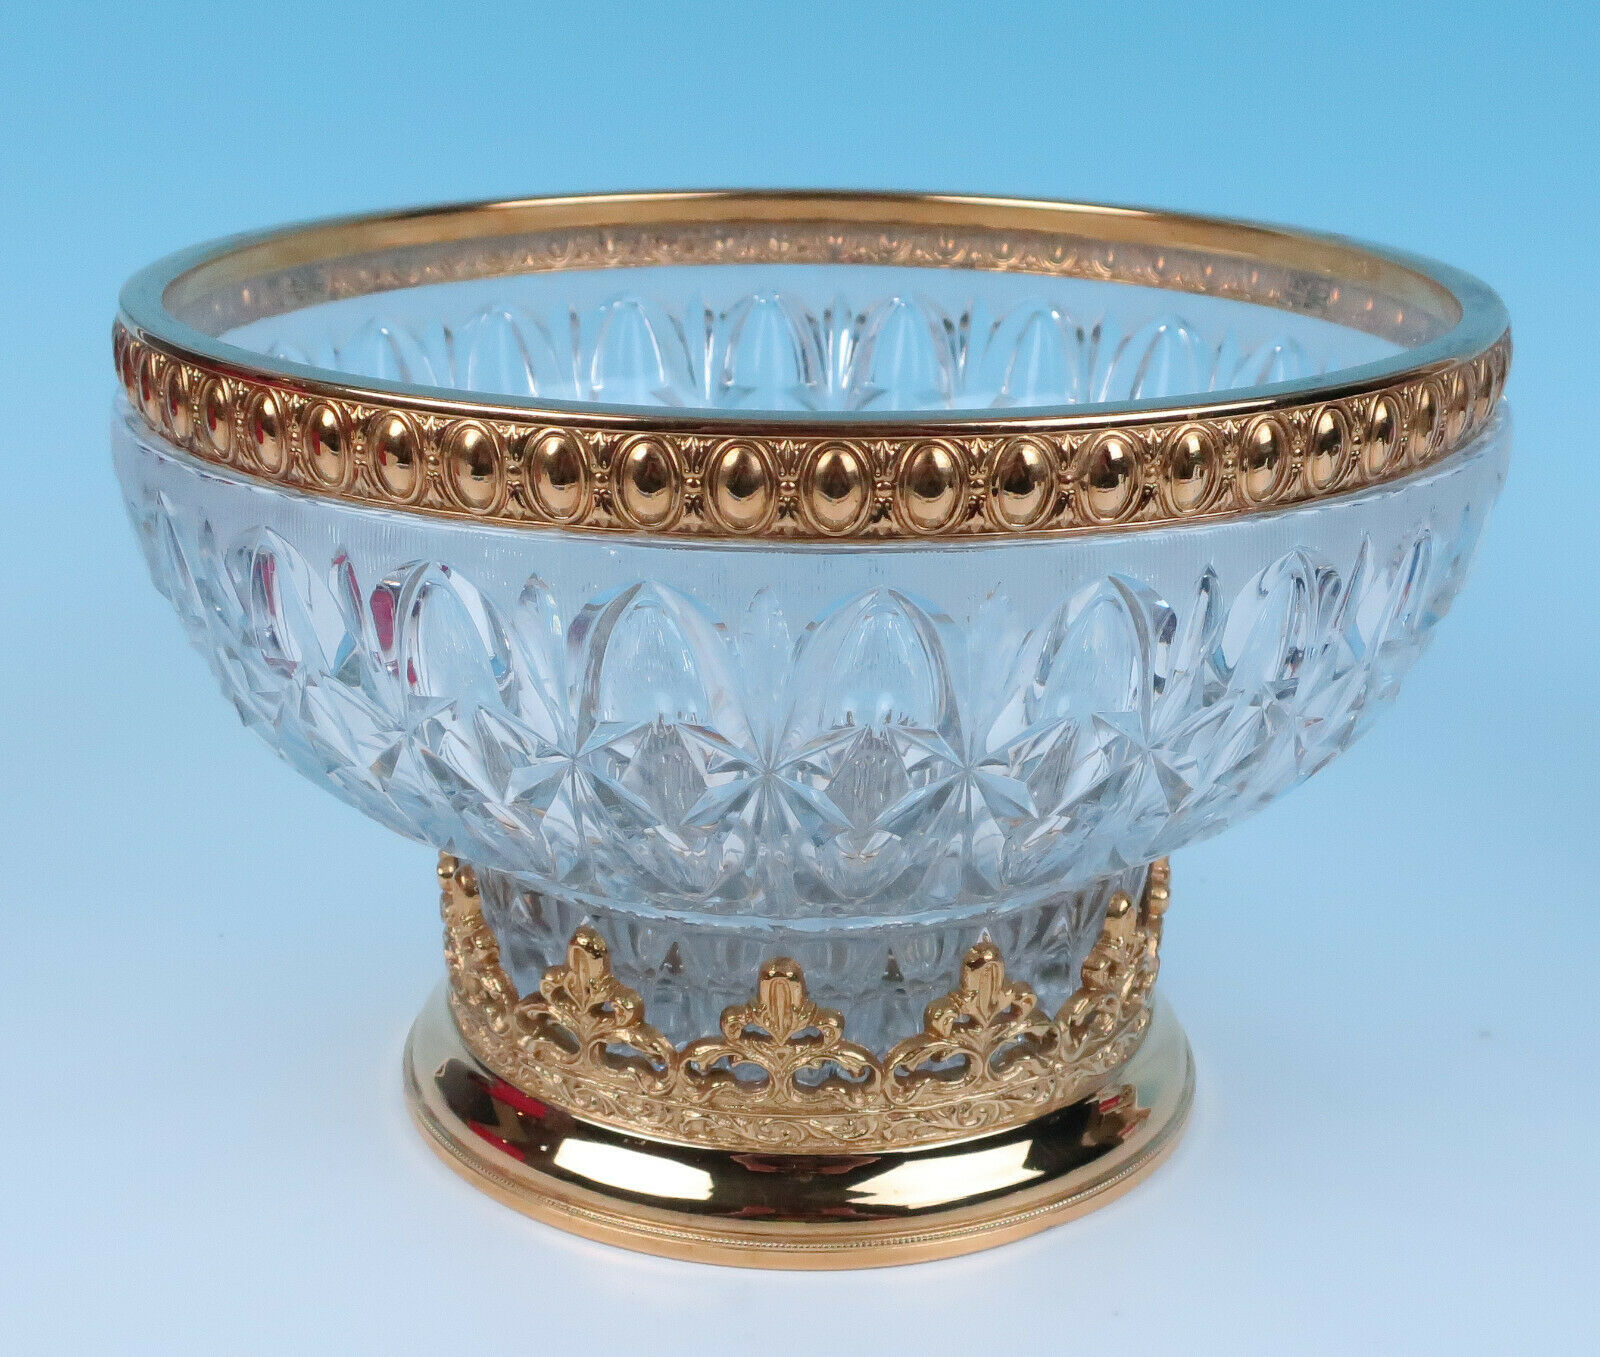 Large Italian Gold Gilt Ormolu Mounted Glass Centerpiece Bowl & Stand Towle